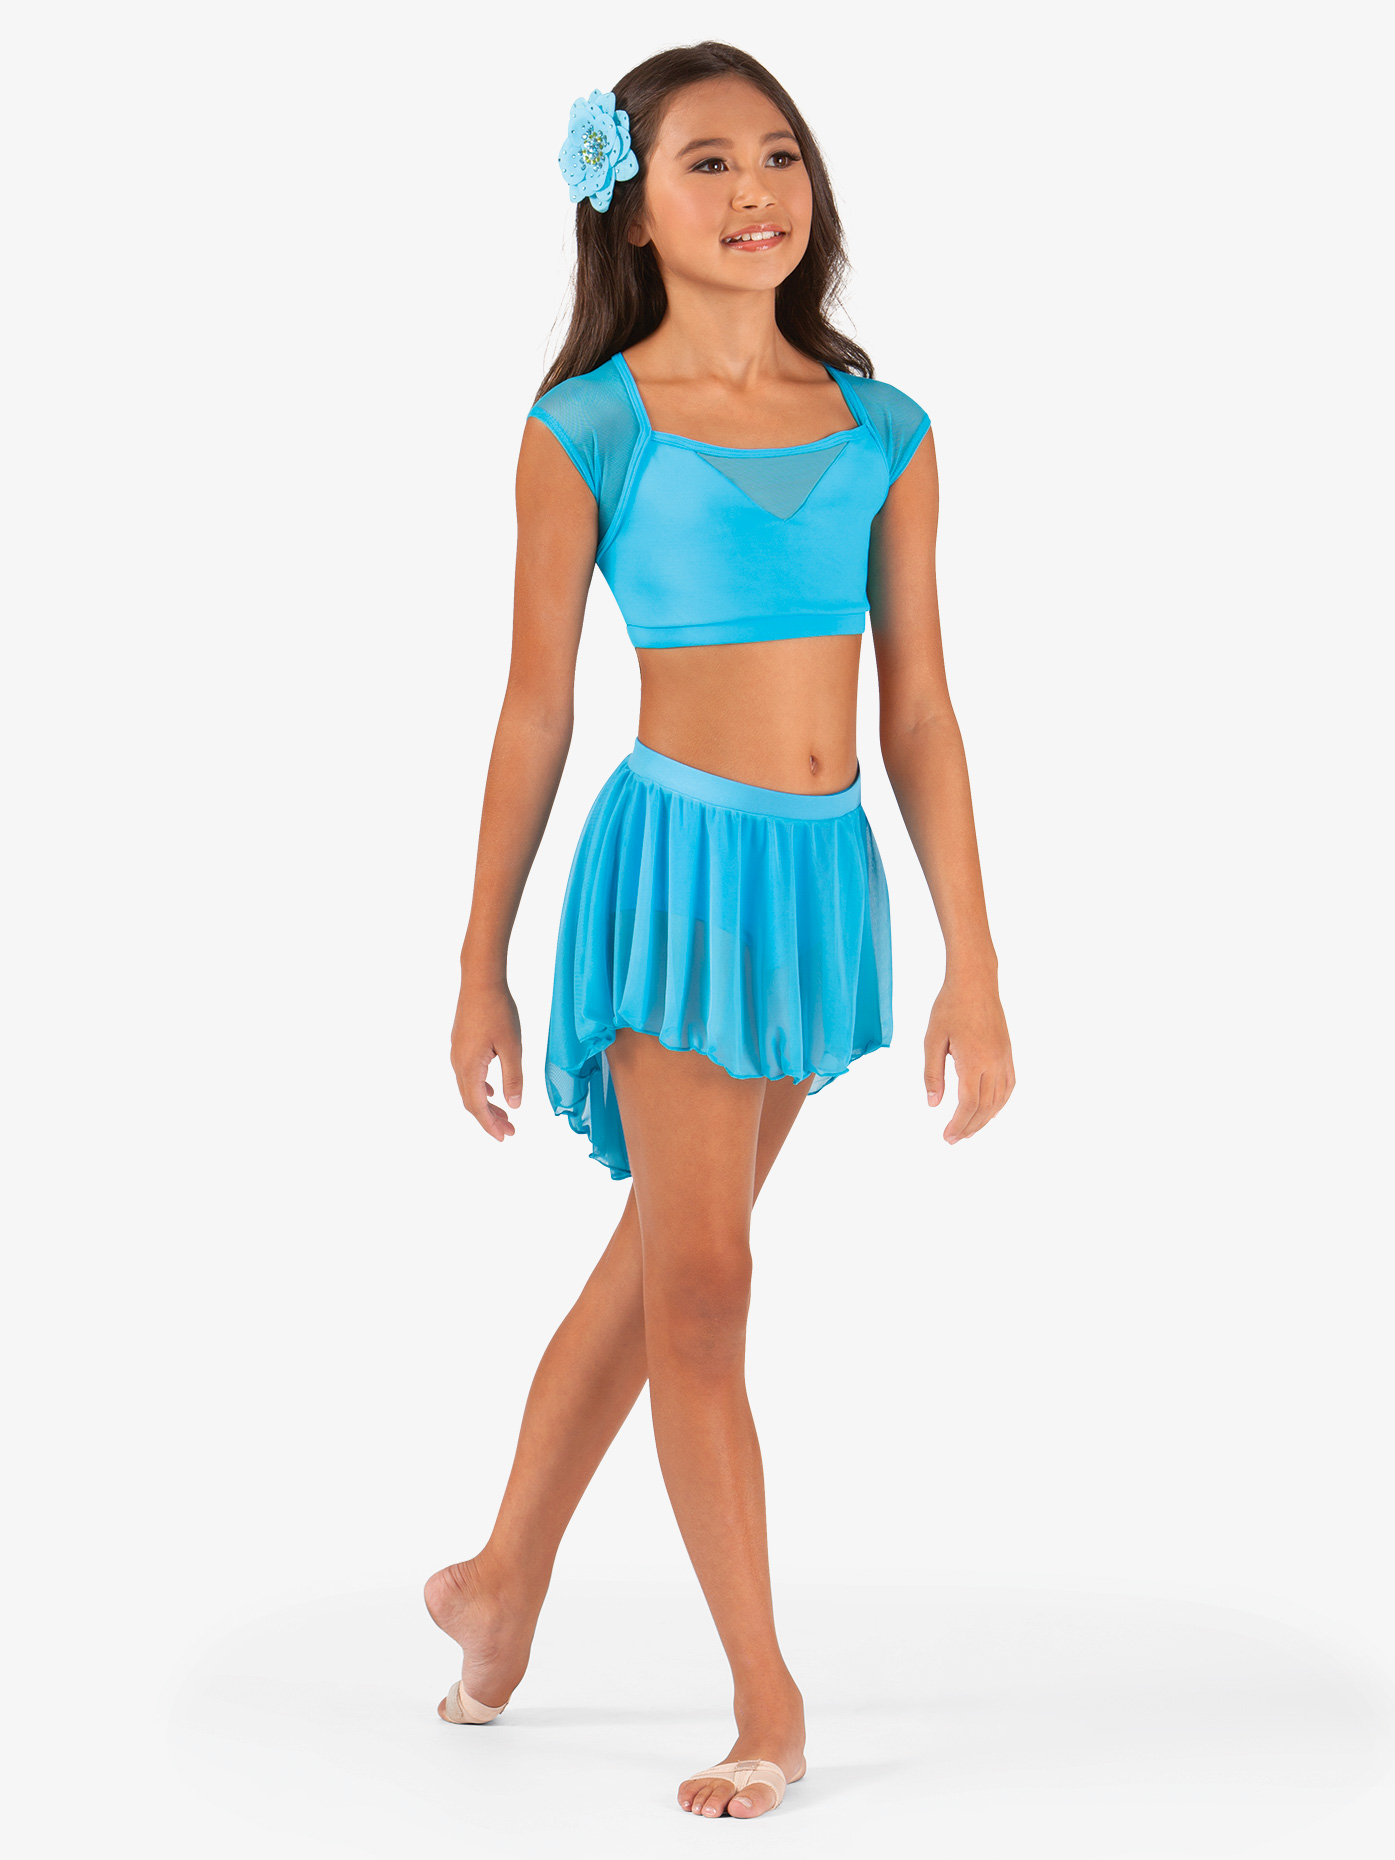 Body Wrappers Child High-Low Mesh Dance Skirt BW1108C